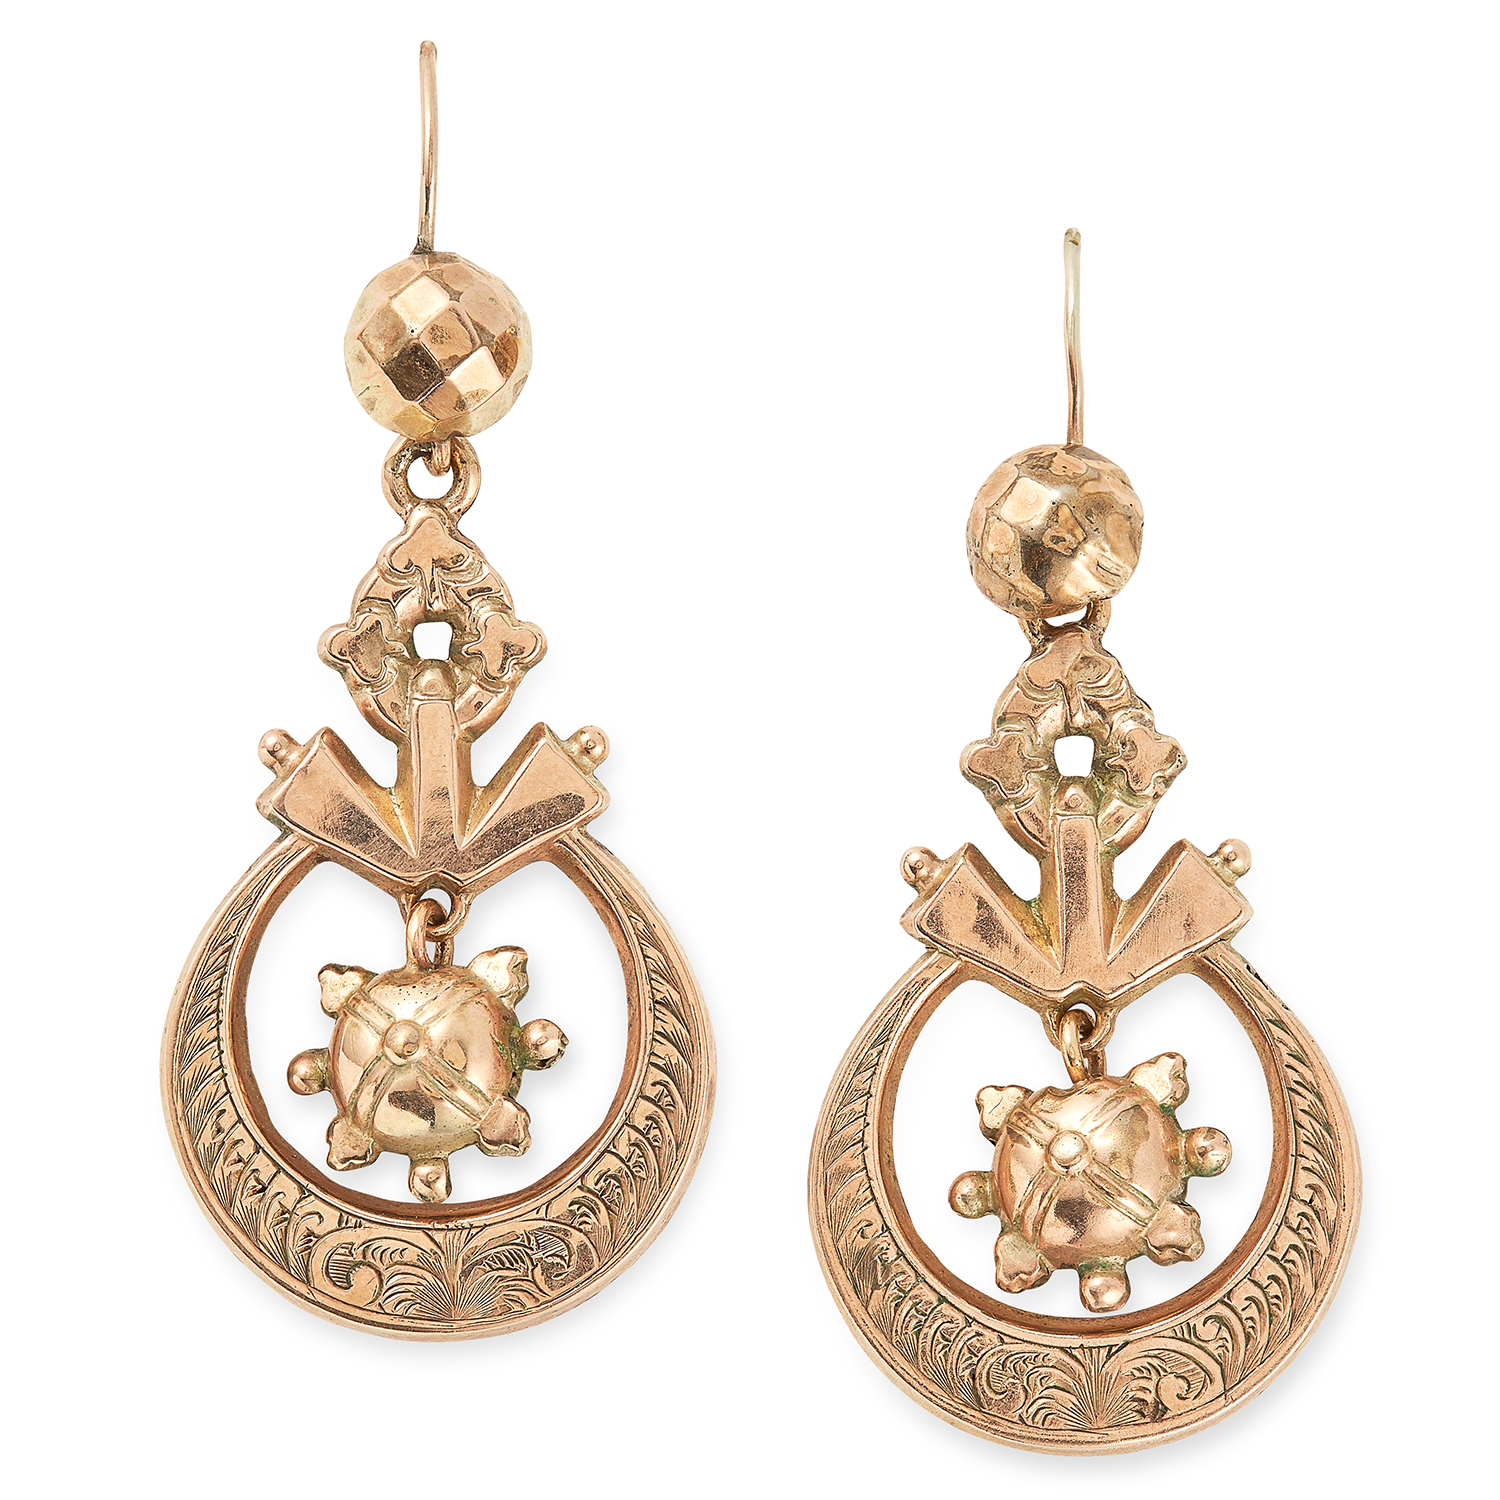 Los 18 - ANTIQUE ARTICULATED GOLD EARRINGS with an articulated star motif, 5cm, 4.2g.